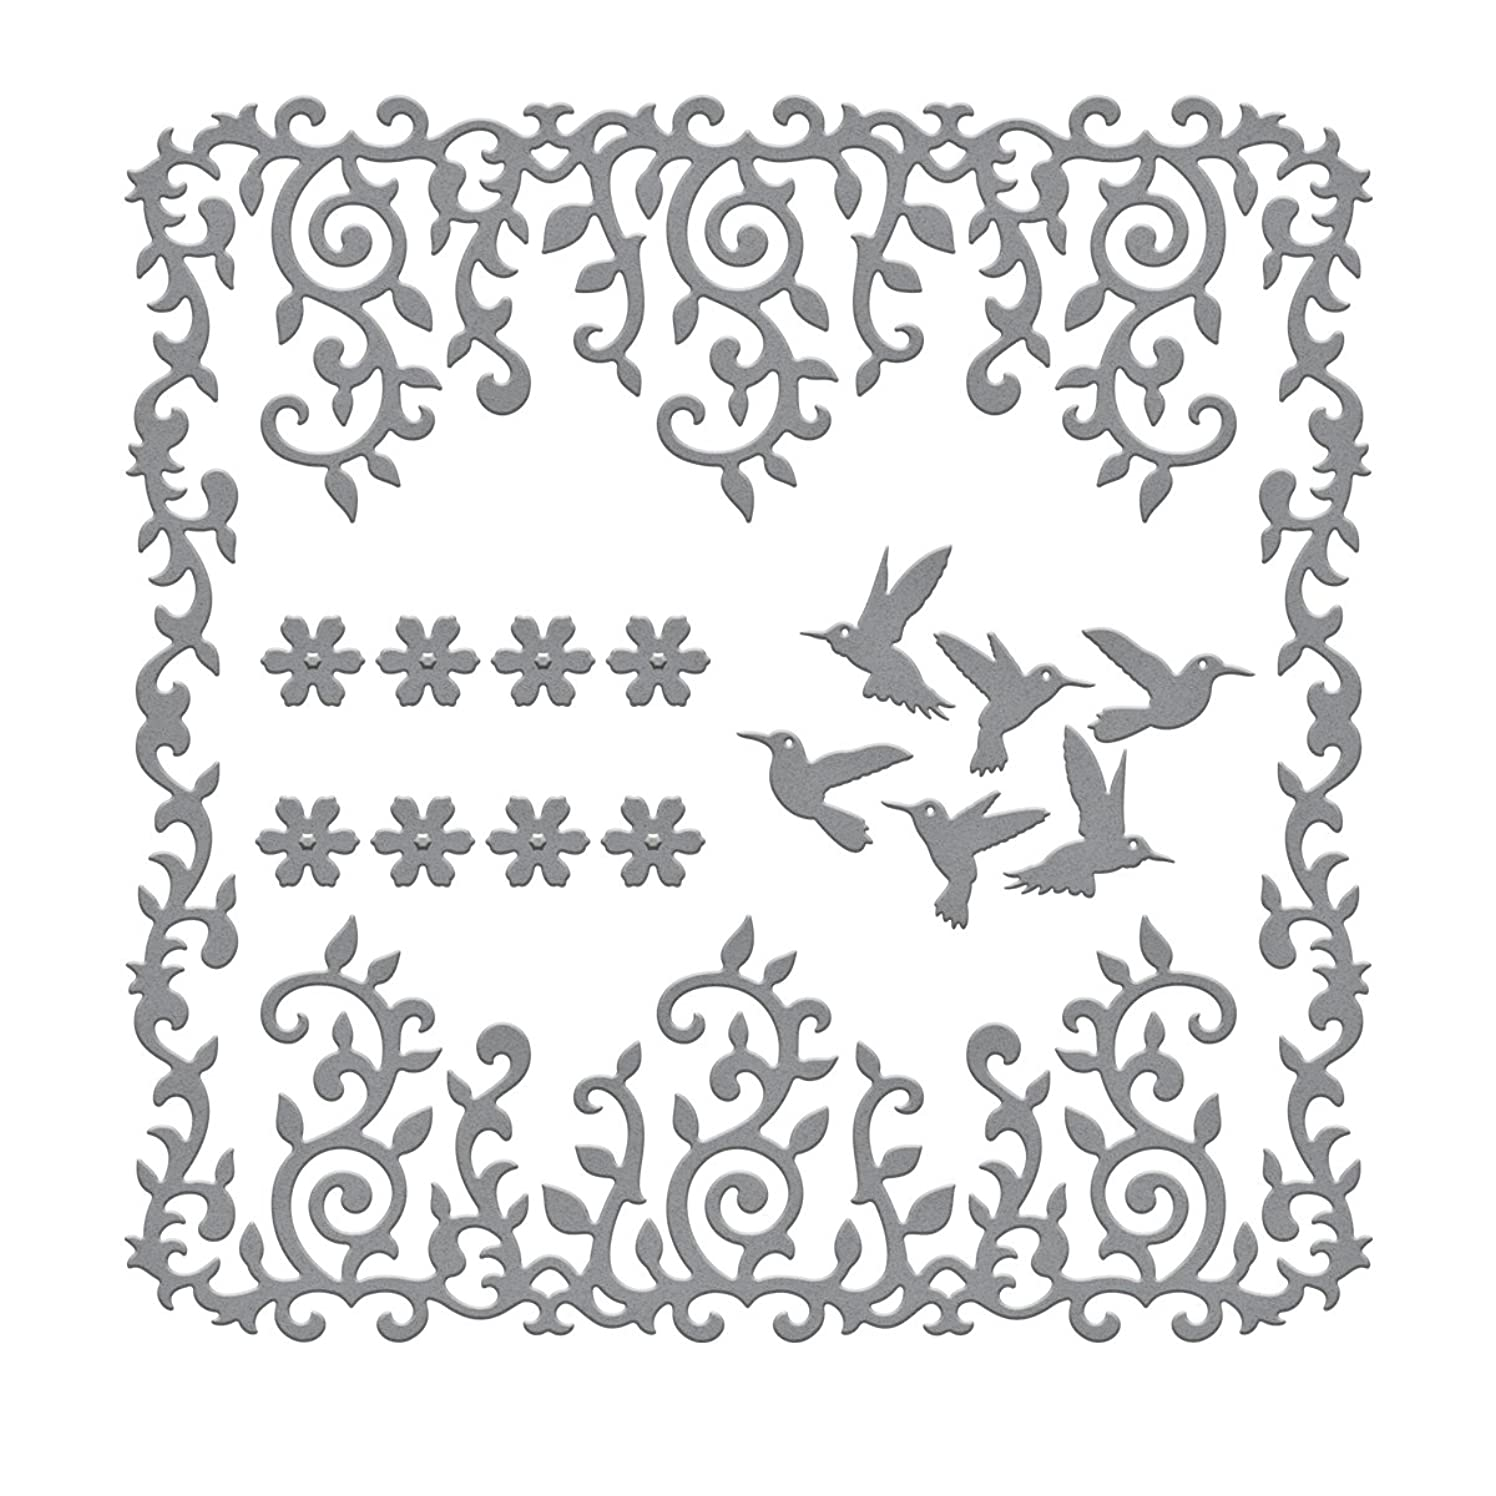 Spellbinders S6-029 Shapeabilities Draping Vines Frame Etched/Wafer Thin Dies